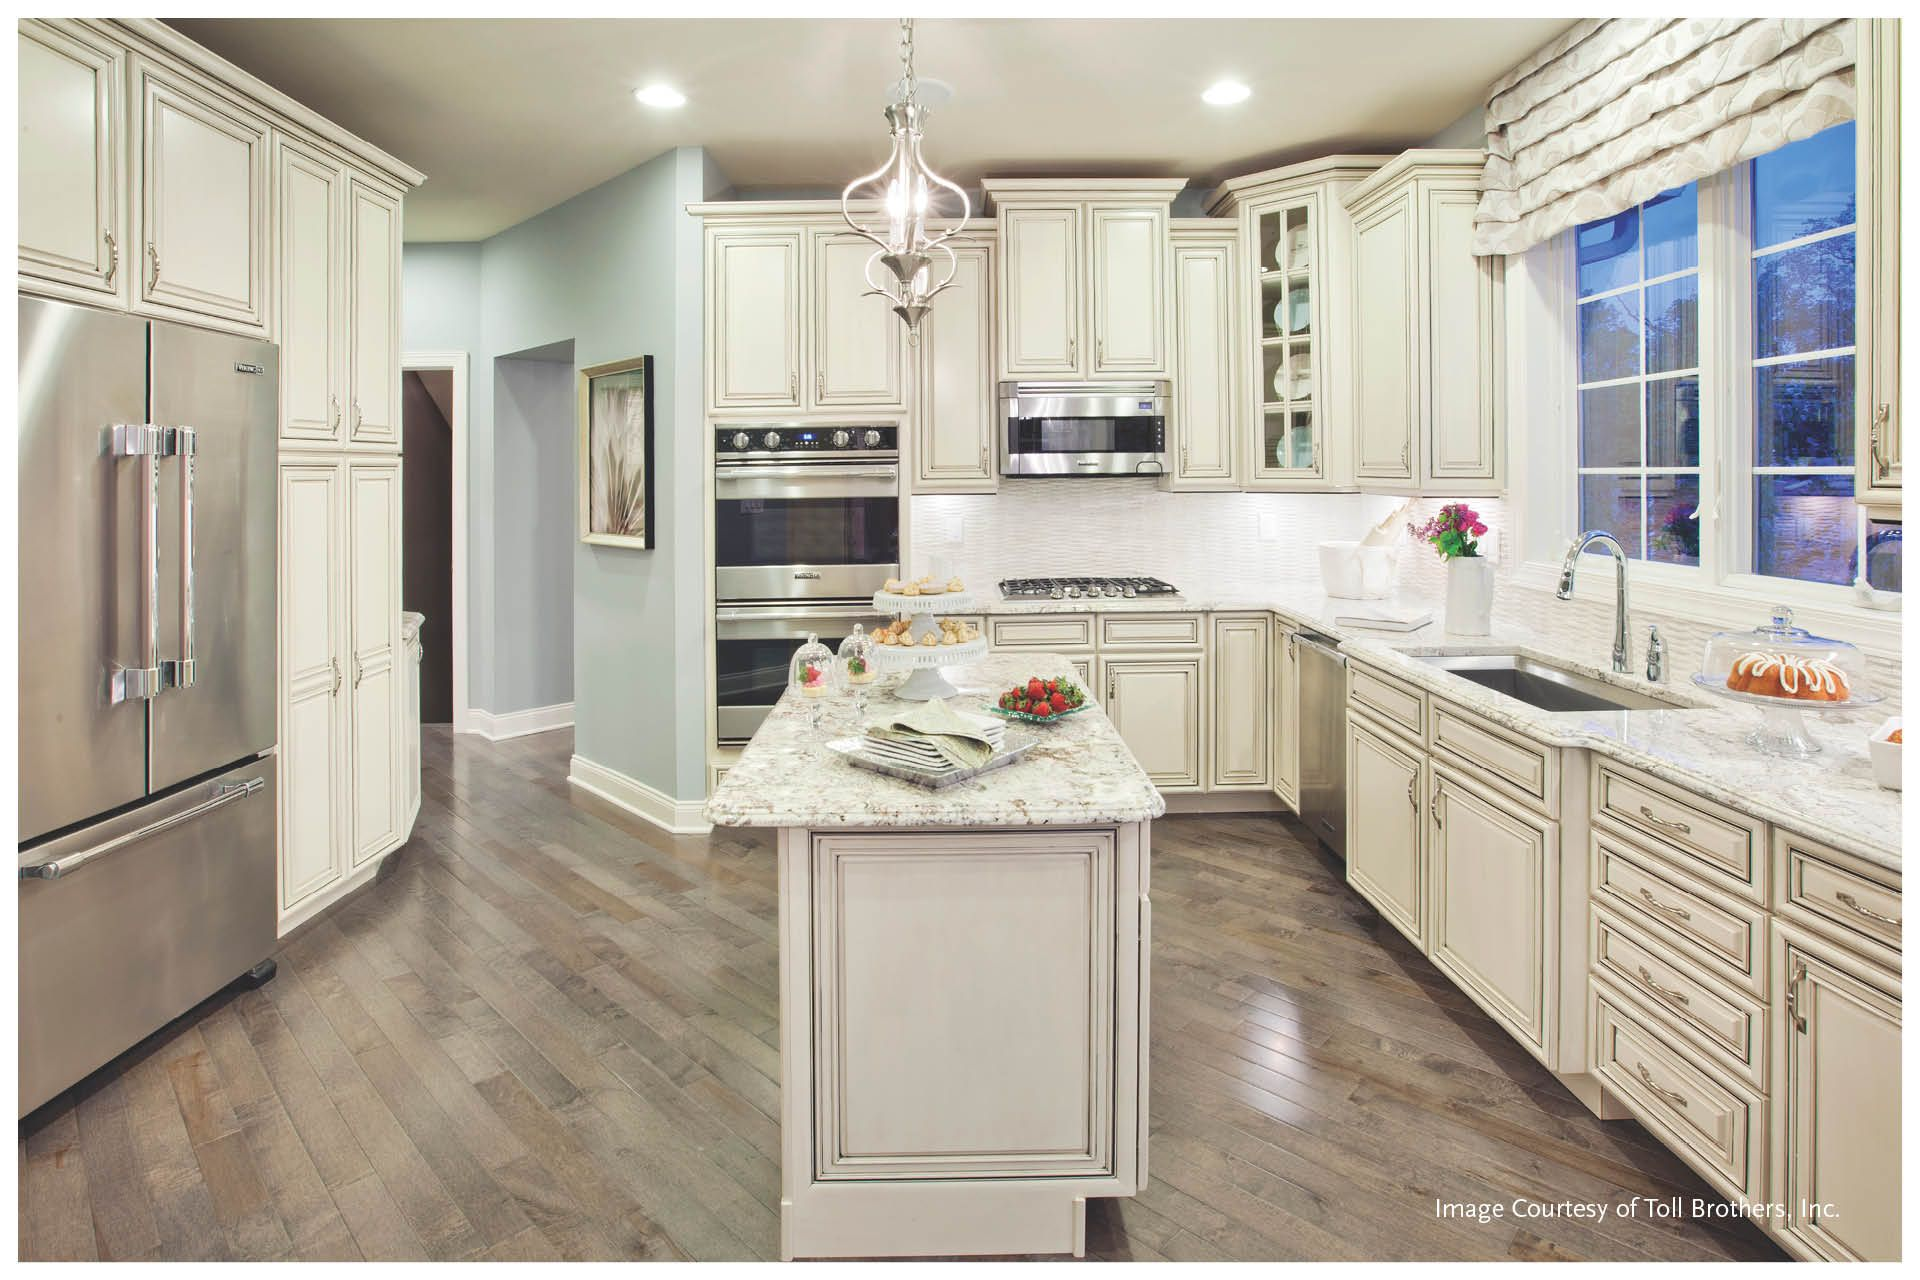 Toll Brothers Reserve at Northampton, PA | Kitchens | Pinterest ...